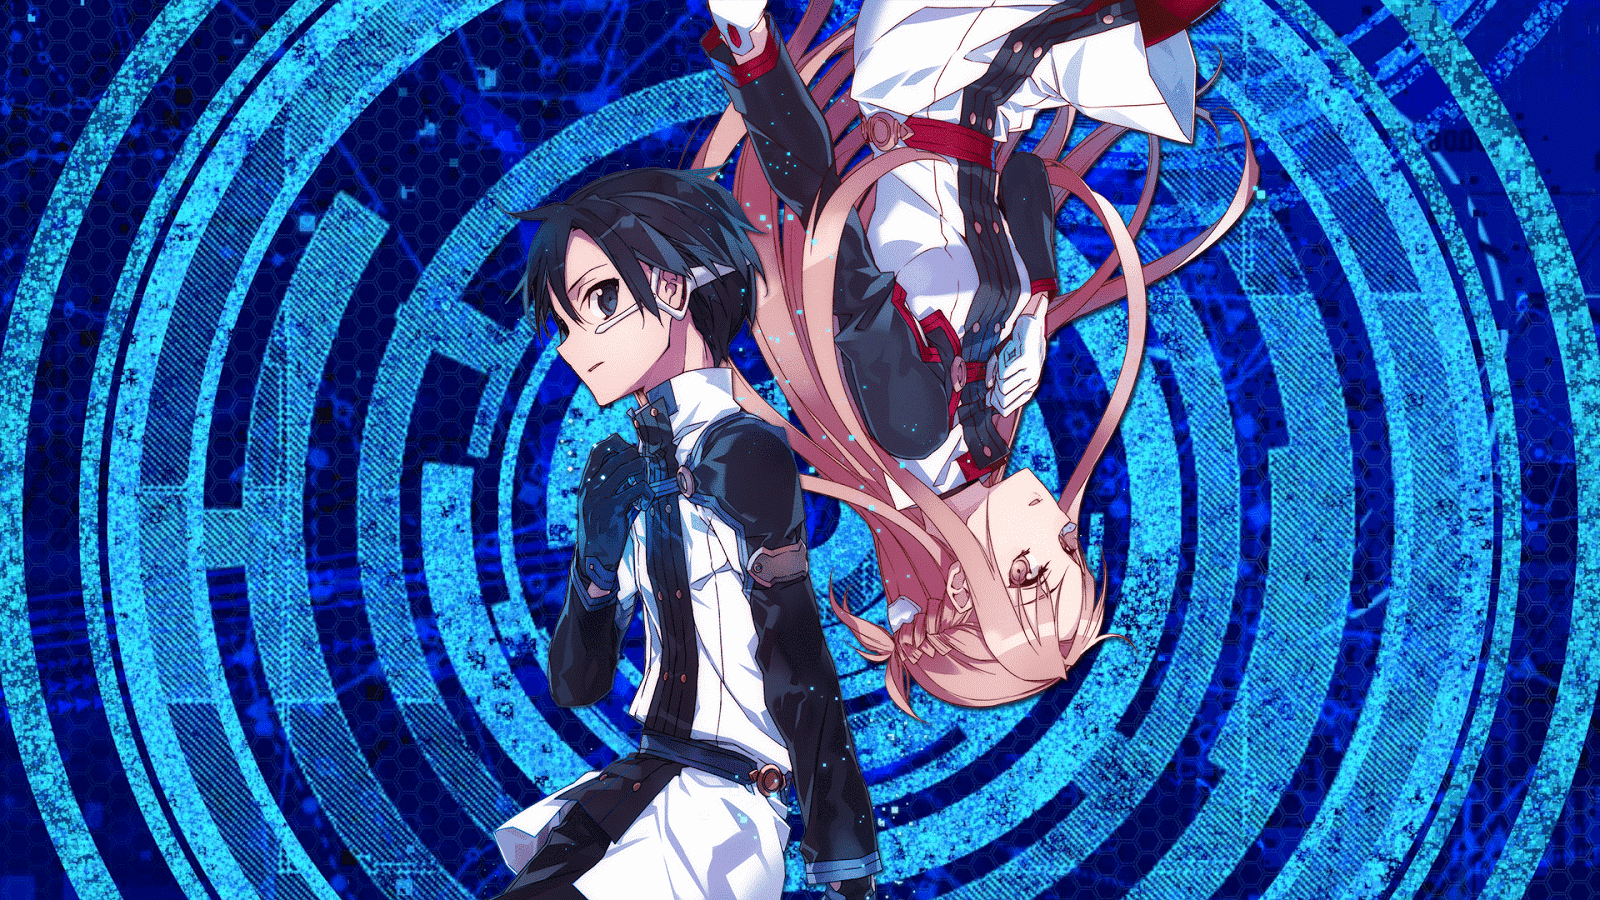 AowVN%2B%252817%2529 min - [ Hình Nền ] Anime Sword Art Online The Movie : Ordinal Scale Cực Đẹp | Wallpaper